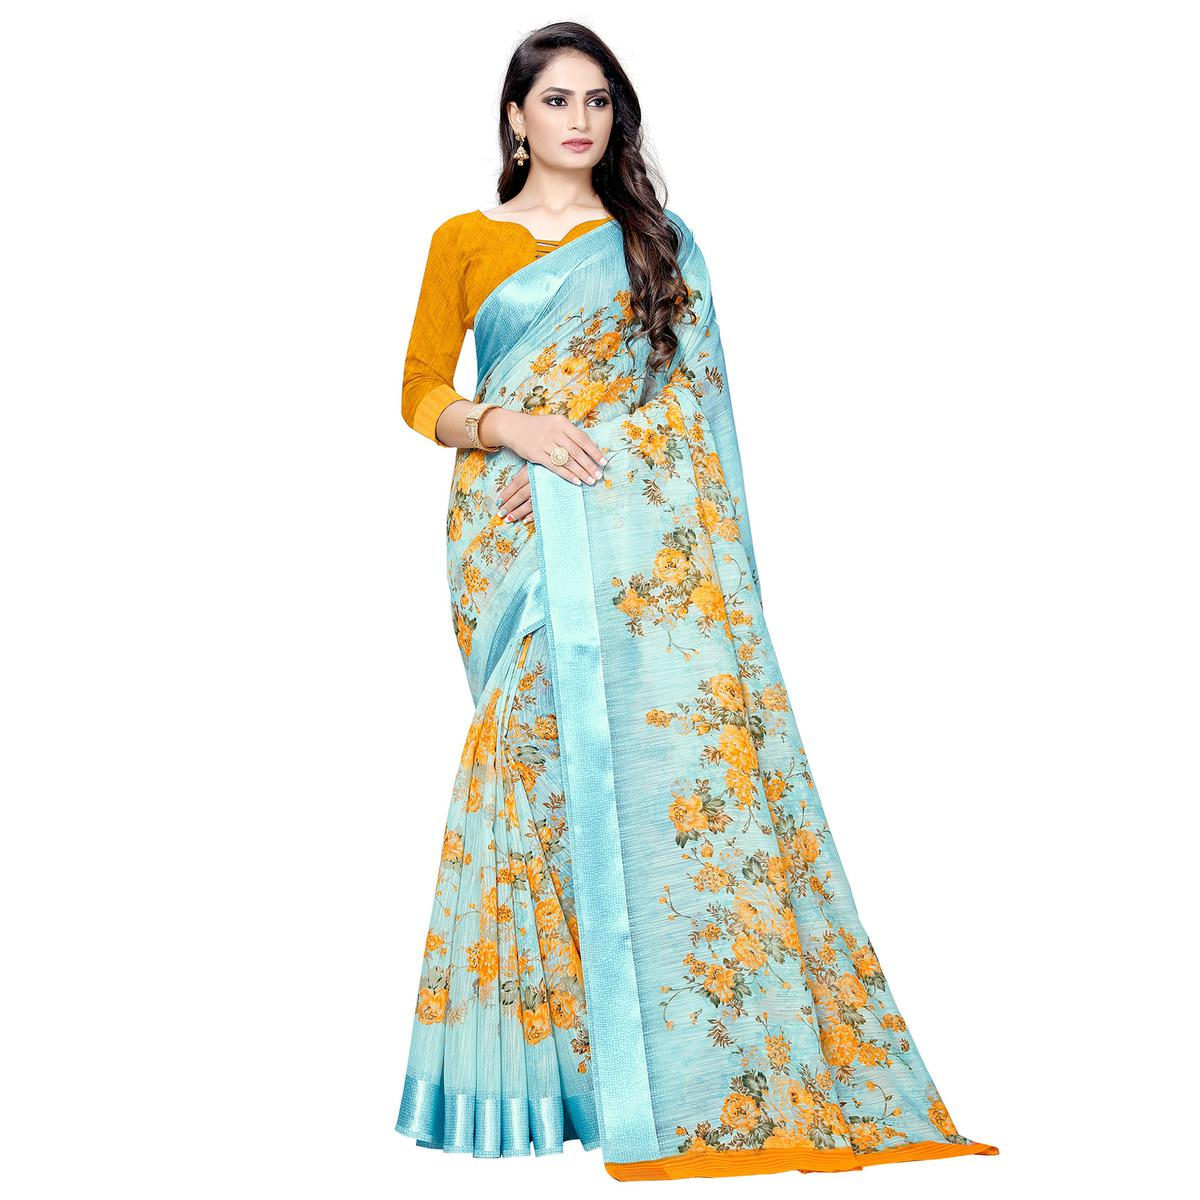 Gleaming Sky Blue Colored Casual Floral Printed Linen Saree